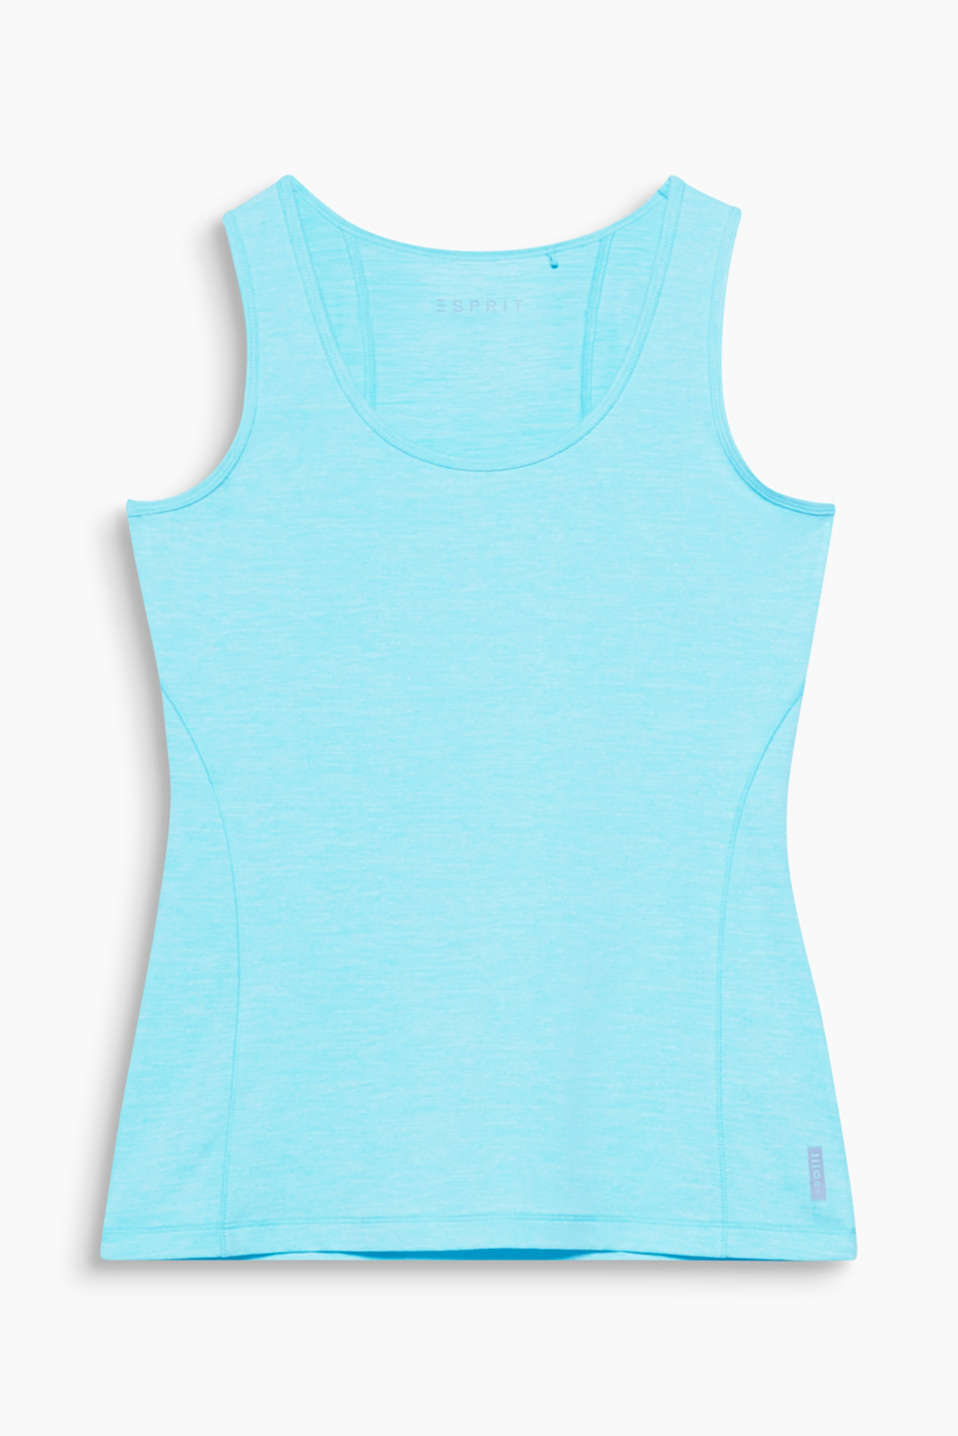 This functional tank top with stretch for comfort is an essential basic for all active sports!